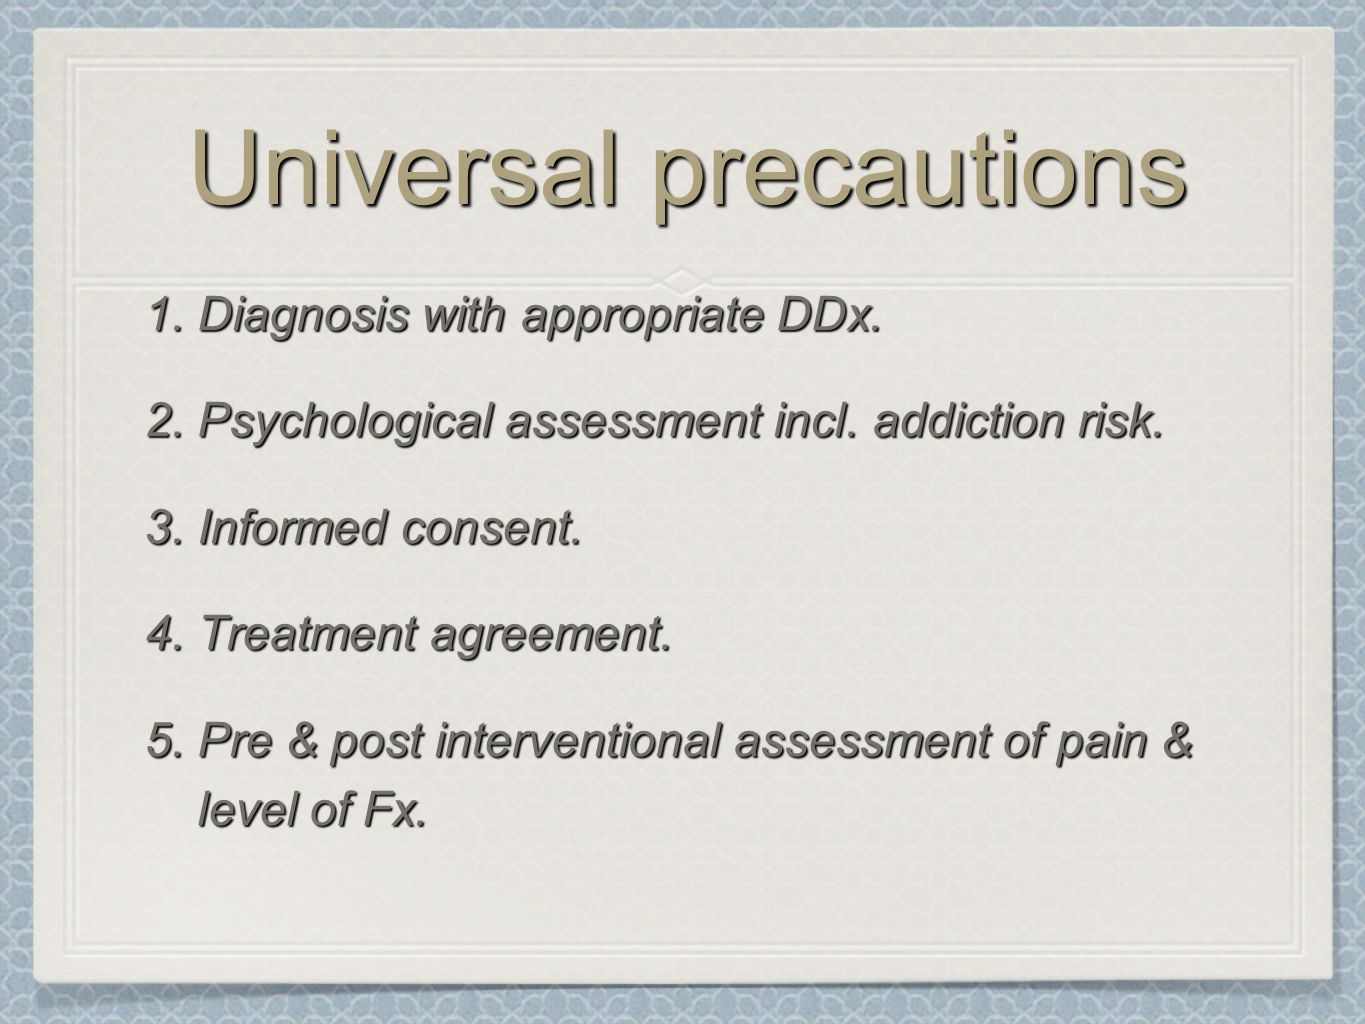 Universal precautions 1.Diagnosis with appropriate DDx. 2.Psychological assessment incl. addiction risk. 3.Informed consent. 4.Treatment agreement. 5.